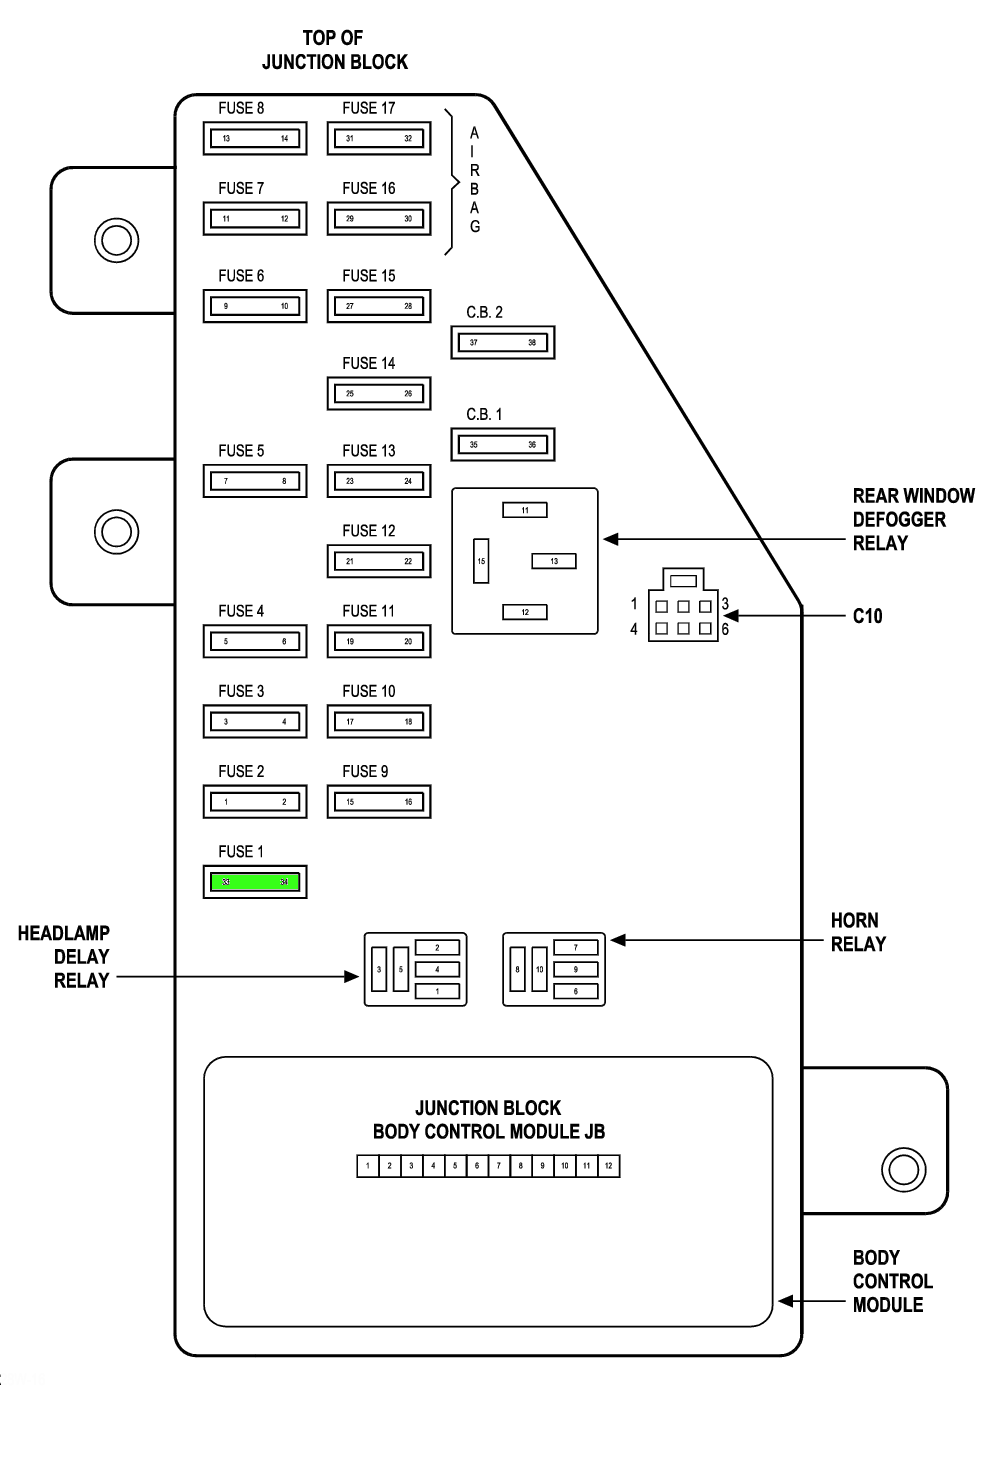 2012 Chrysler 200 Fuse Box Diagram 34 Wiring Images Dodge Journey Location 2002 Sebring